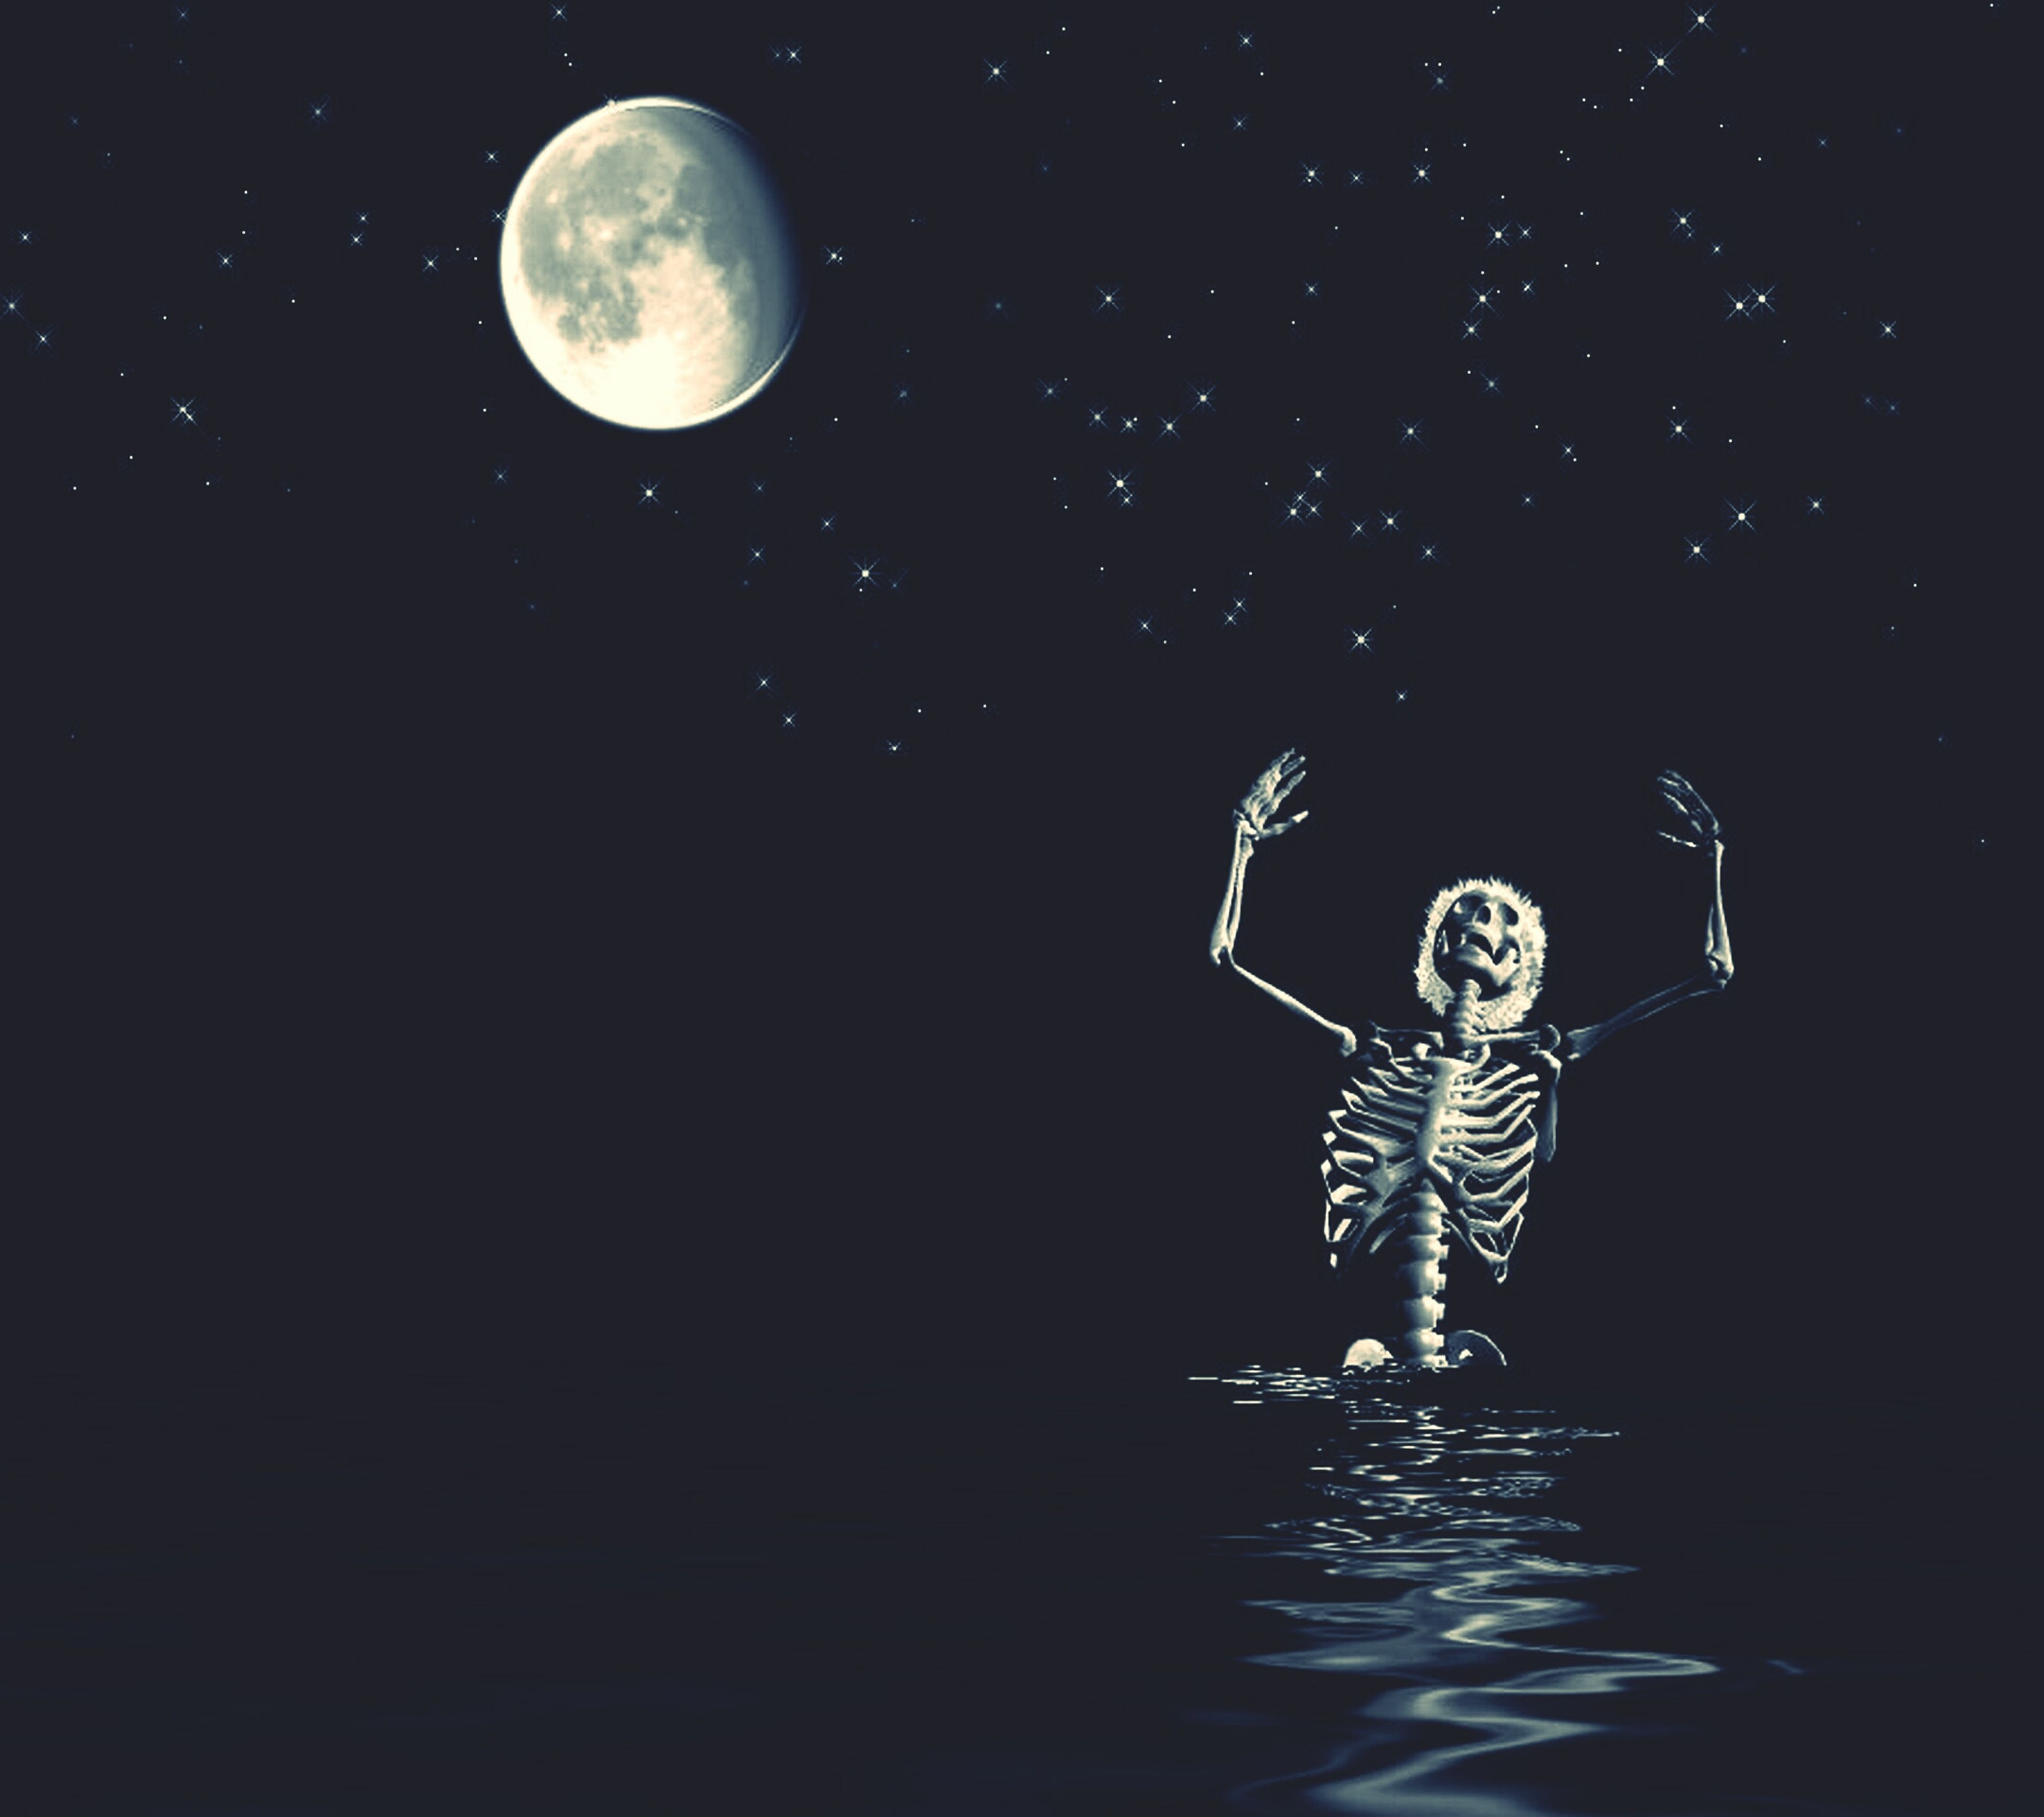 night, water, astronomy, moon, reflection, copy space, motion, low angle view, discovery, illuminated, drop, waterfront, nature, splashing, exploration, dark, no people, beauty in nature, full moon, mid-air